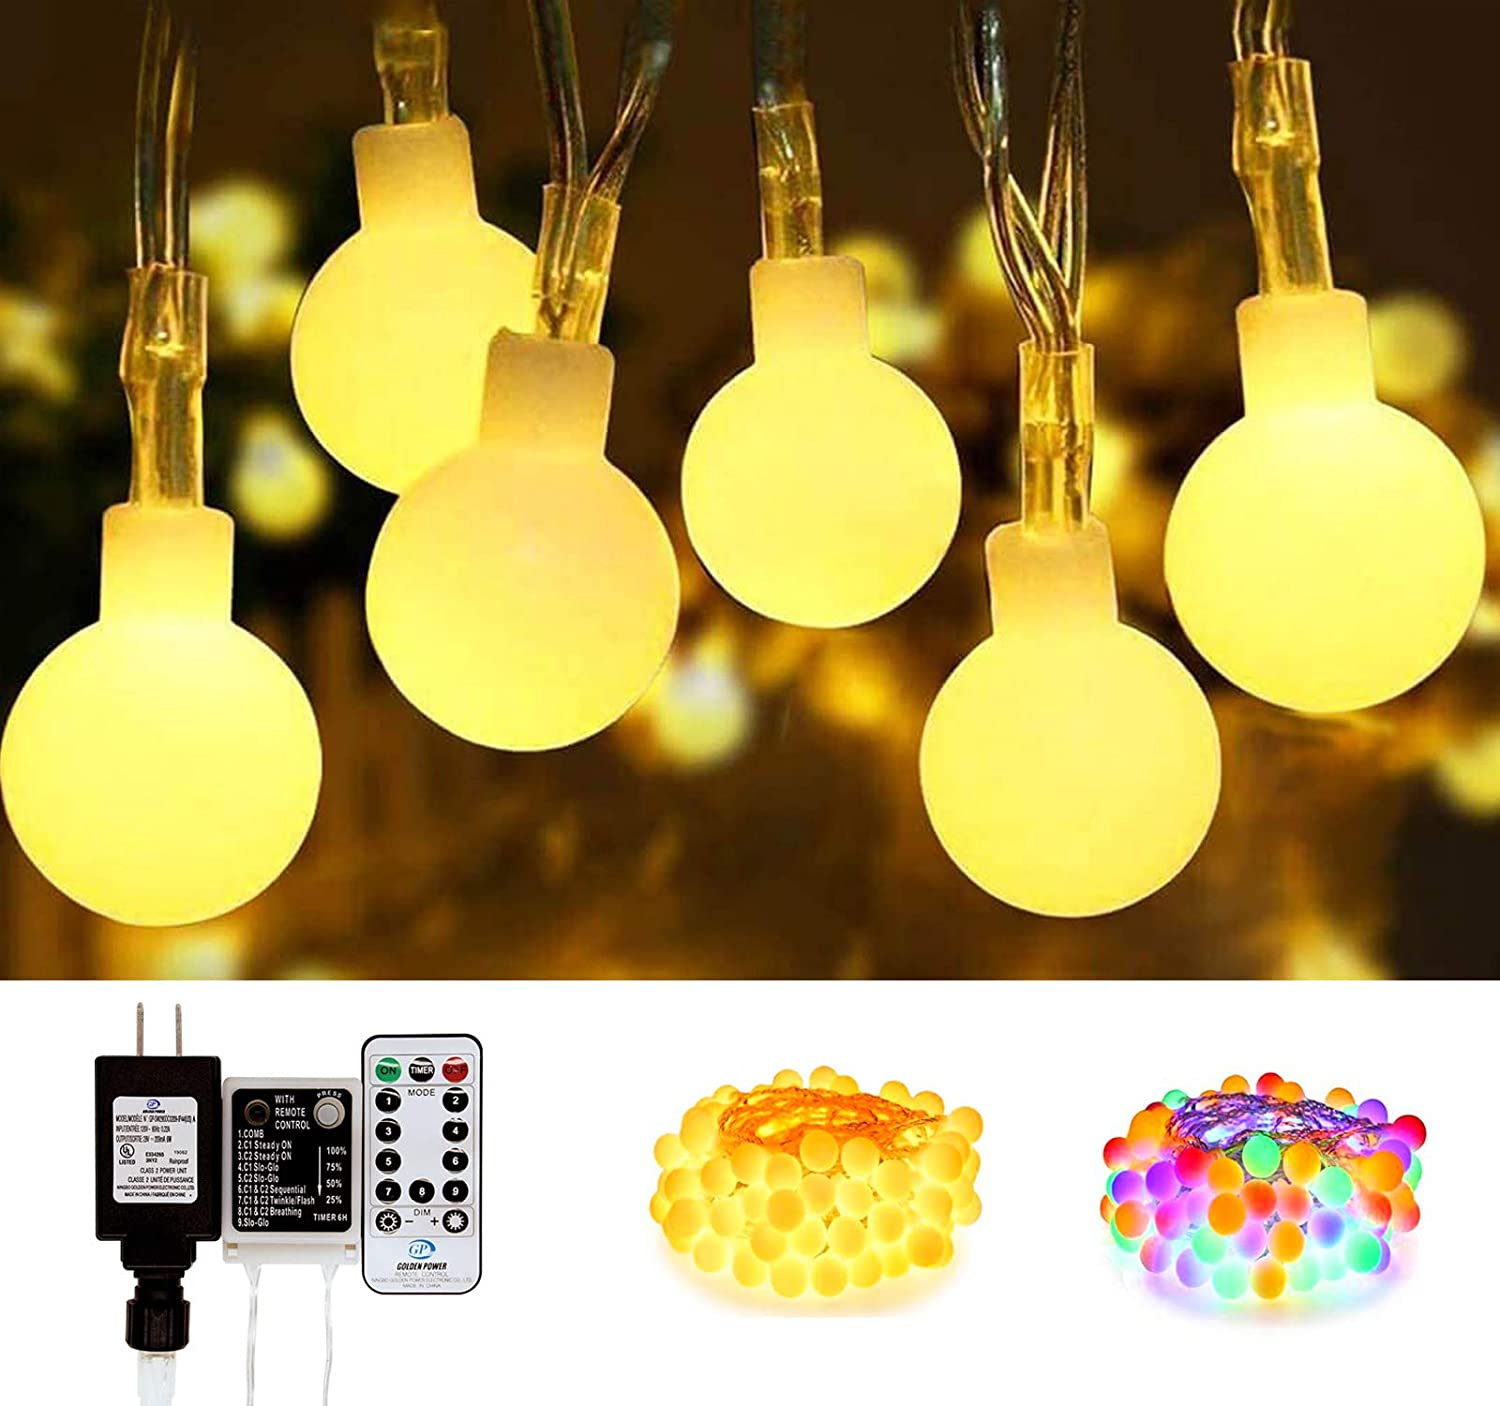 SEMILITS LED Globe String Lights 45Ft 100 LED Plug in String Light with Remote Outdoor Fairy Lights for Christmas Indoor Bedroom Decor(Upgrade Warm White & Multicolor Free Switching)